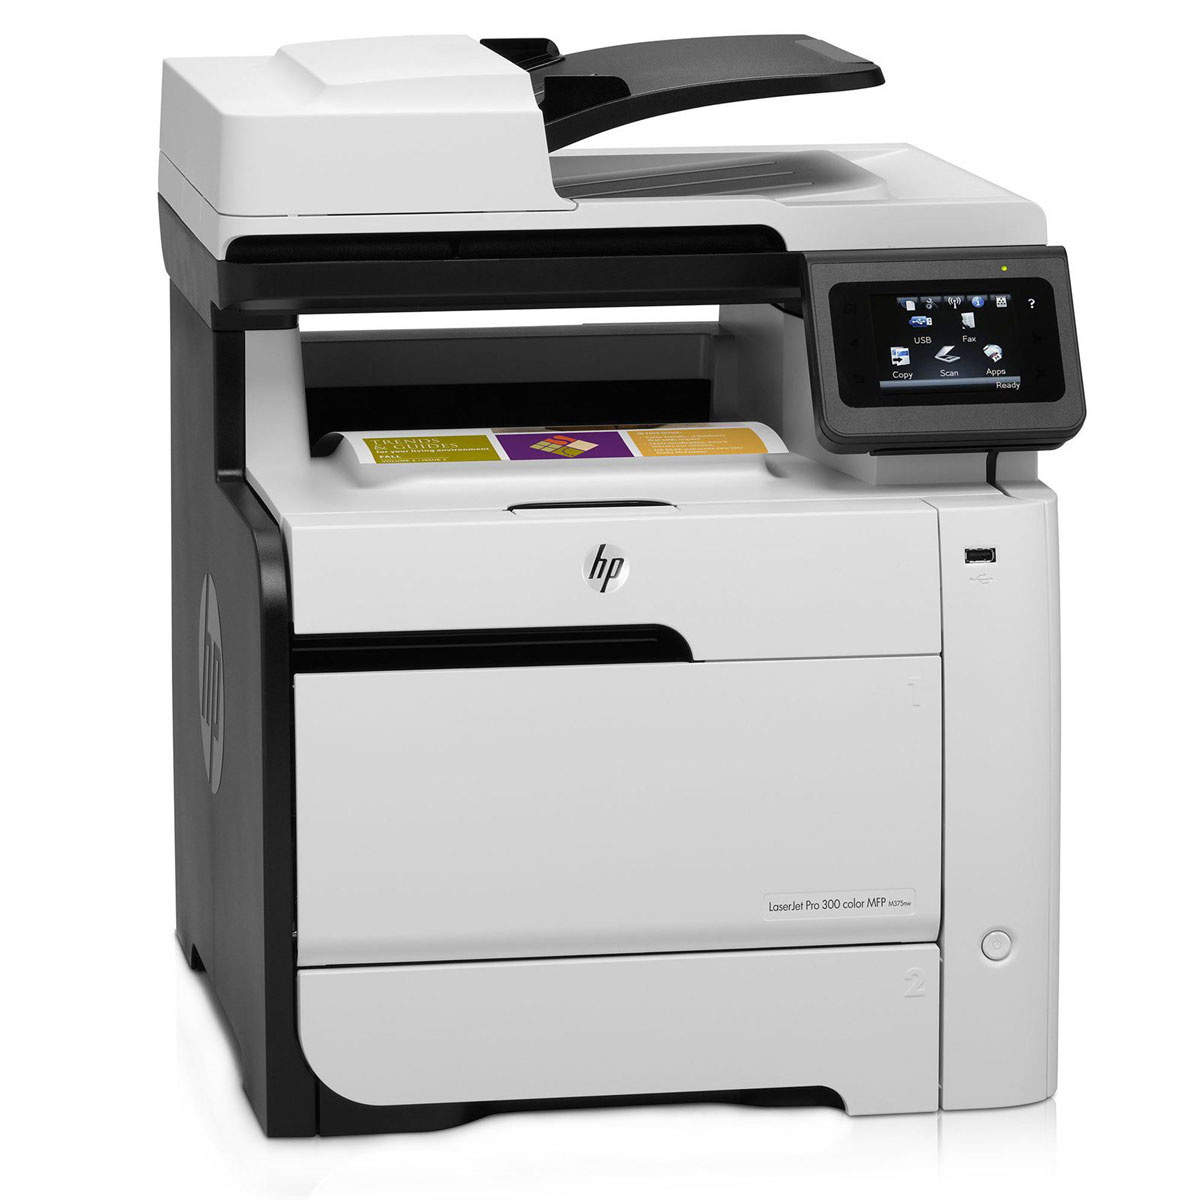 hp laserjet pro 300 color mfp m375nw ce903a imprimante multifonction hp sur ldlc. Black Bedroom Furniture Sets. Home Design Ideas